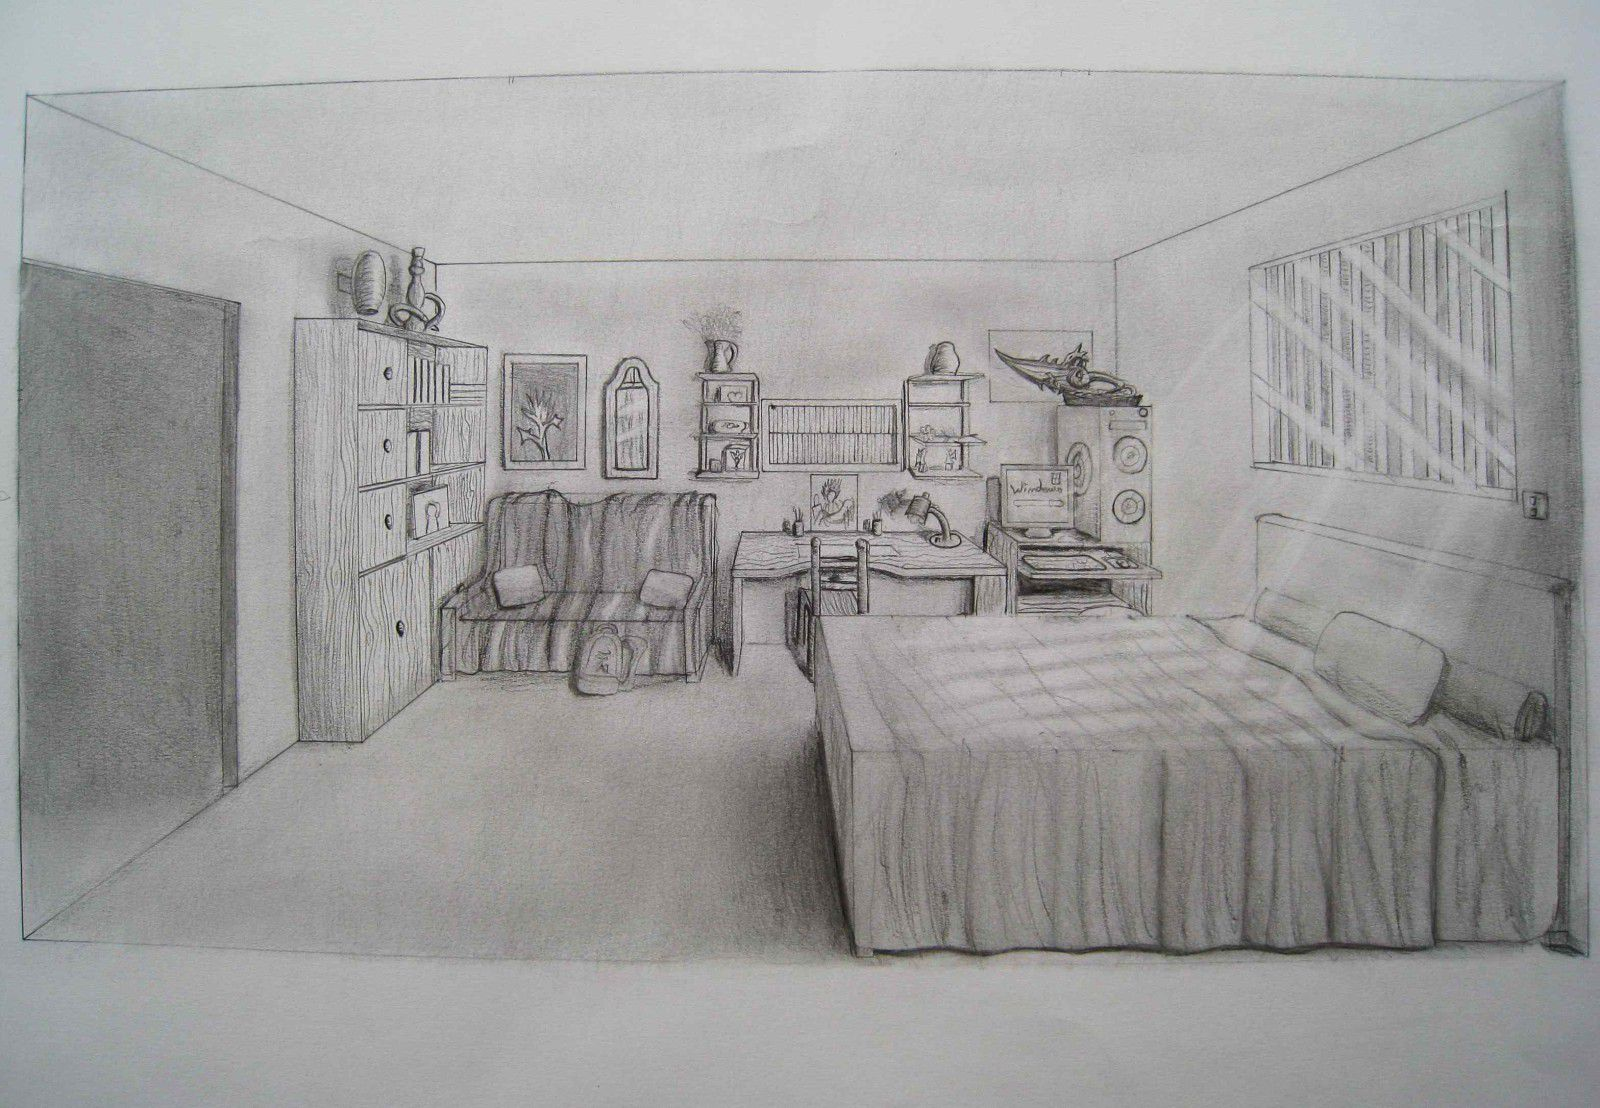 Dessin fourmis chambre perspective luis royo ii luis royo i scultpure l zard for Chambre en perspective lineaire